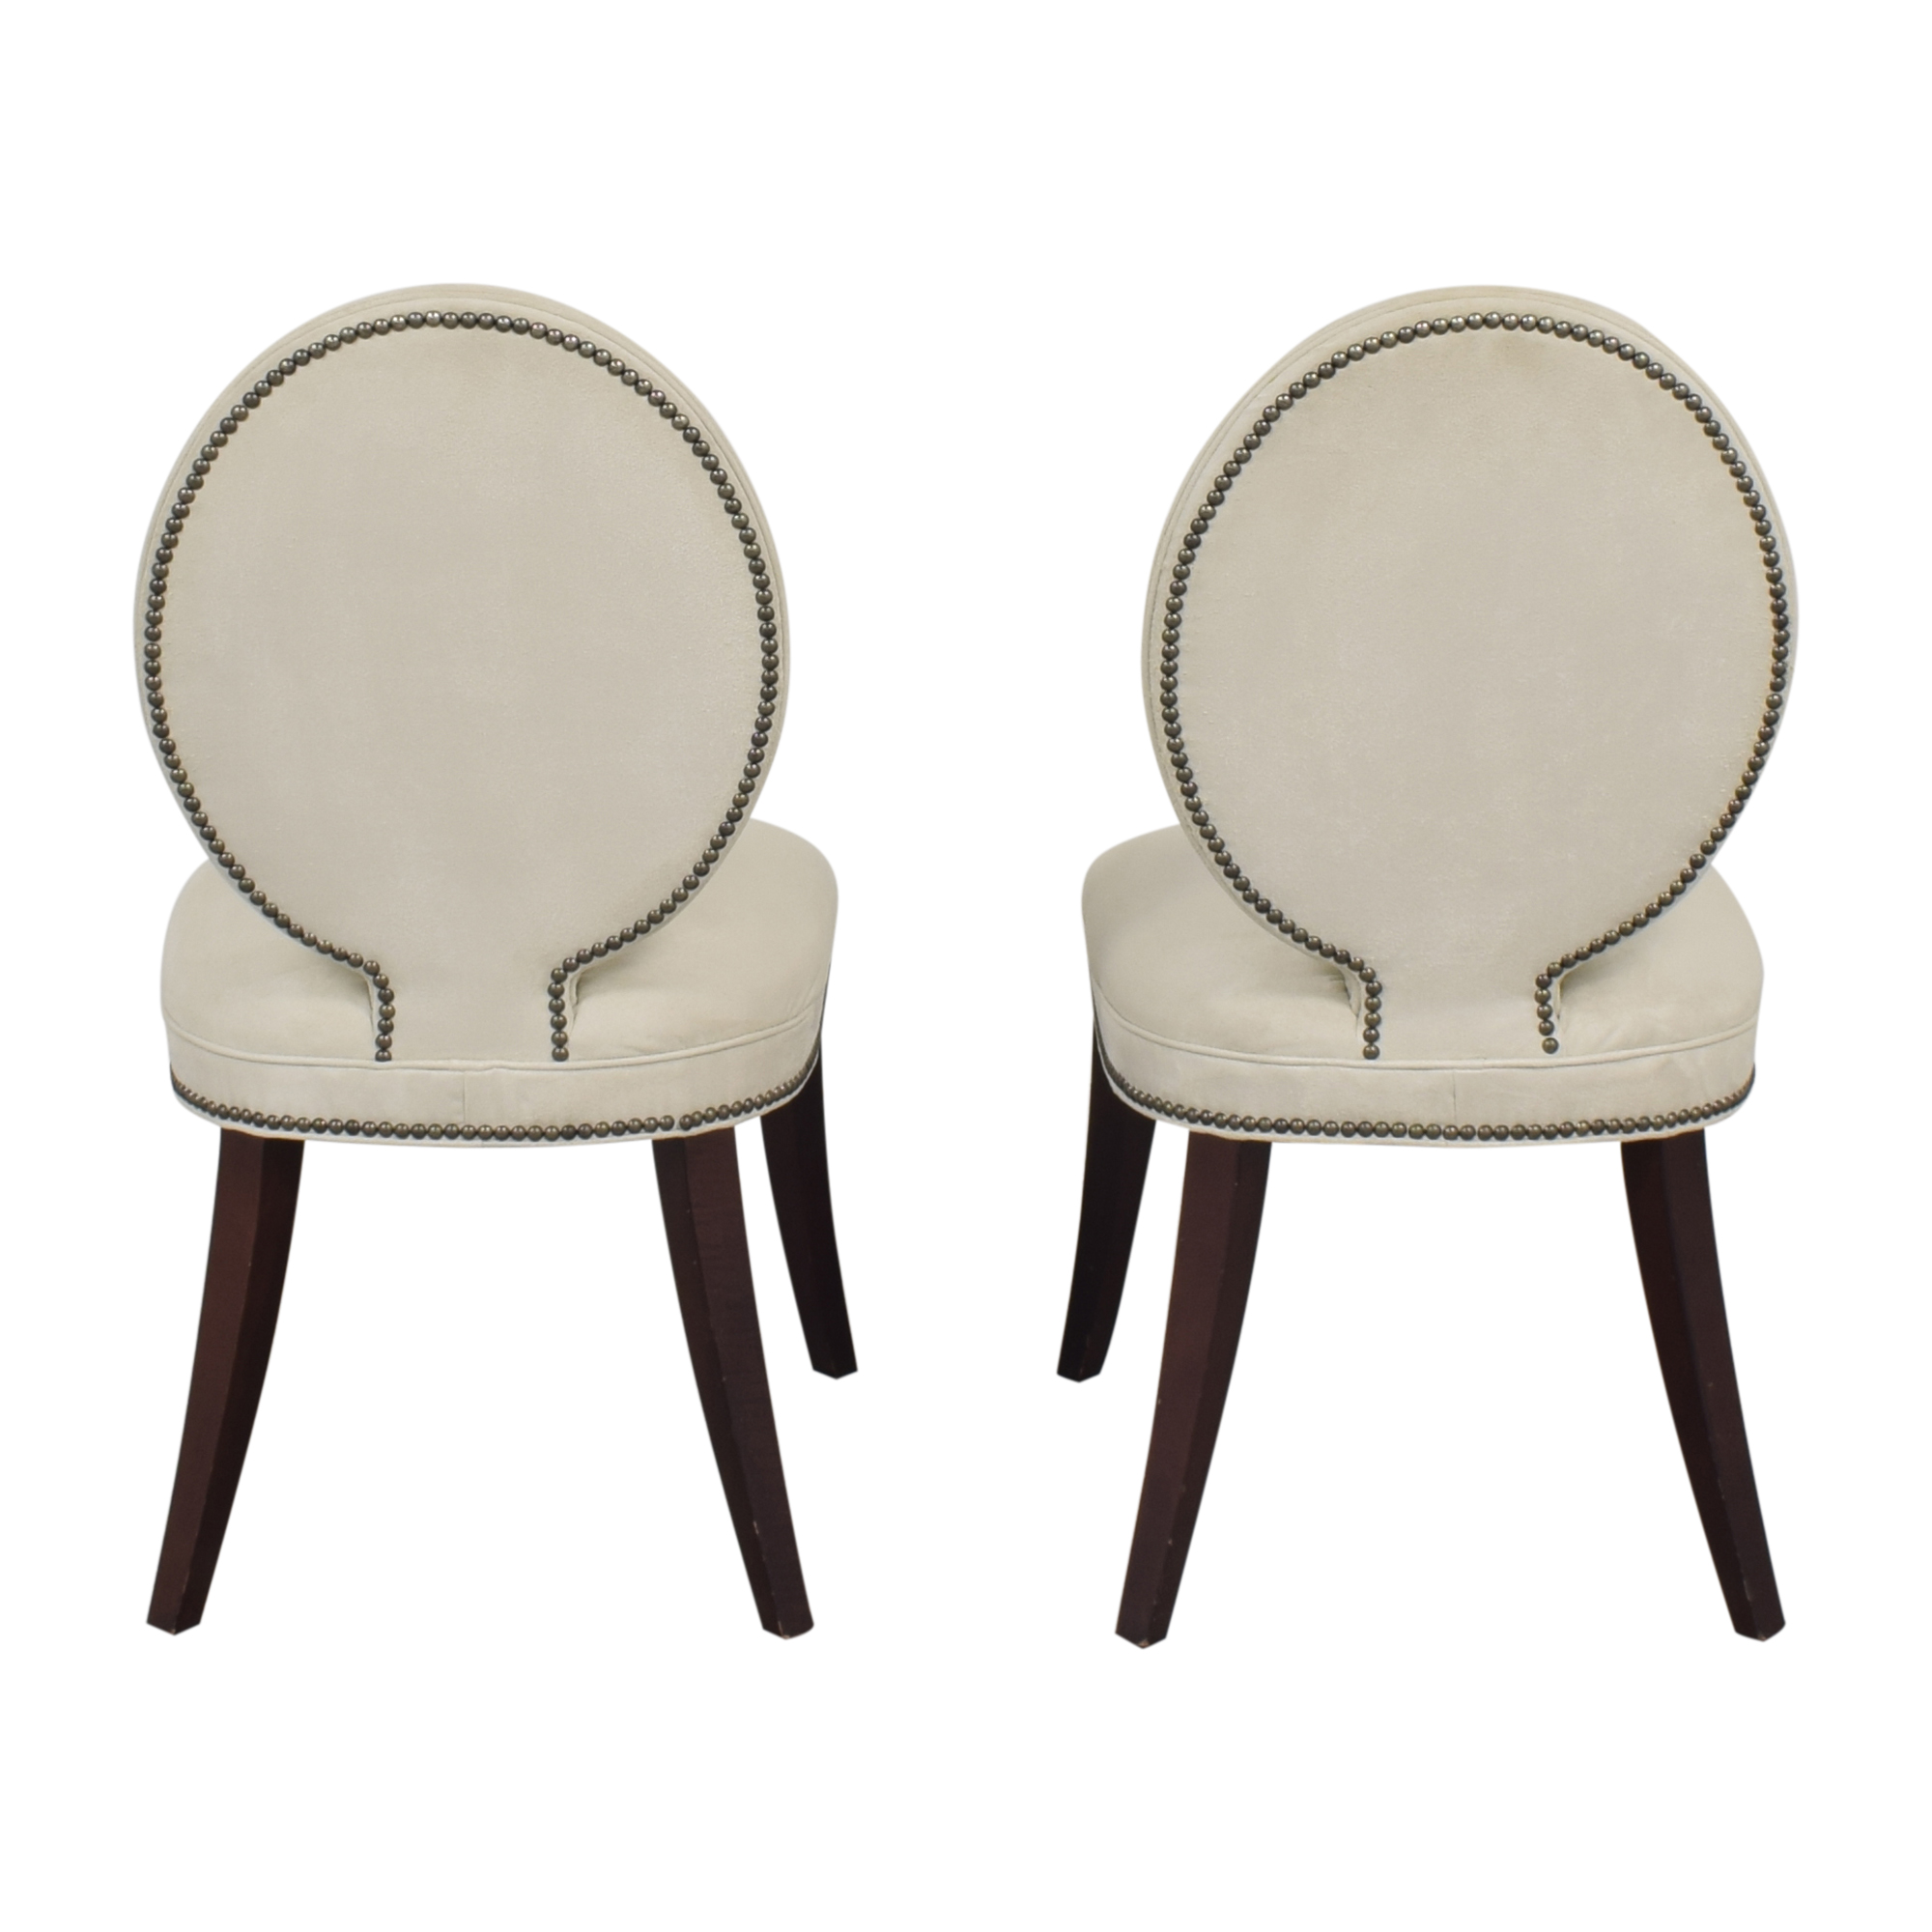 Mitchell Gold + Bob Williams Mitchell Gold + Bob Williams Oval Back Side Chairs discount